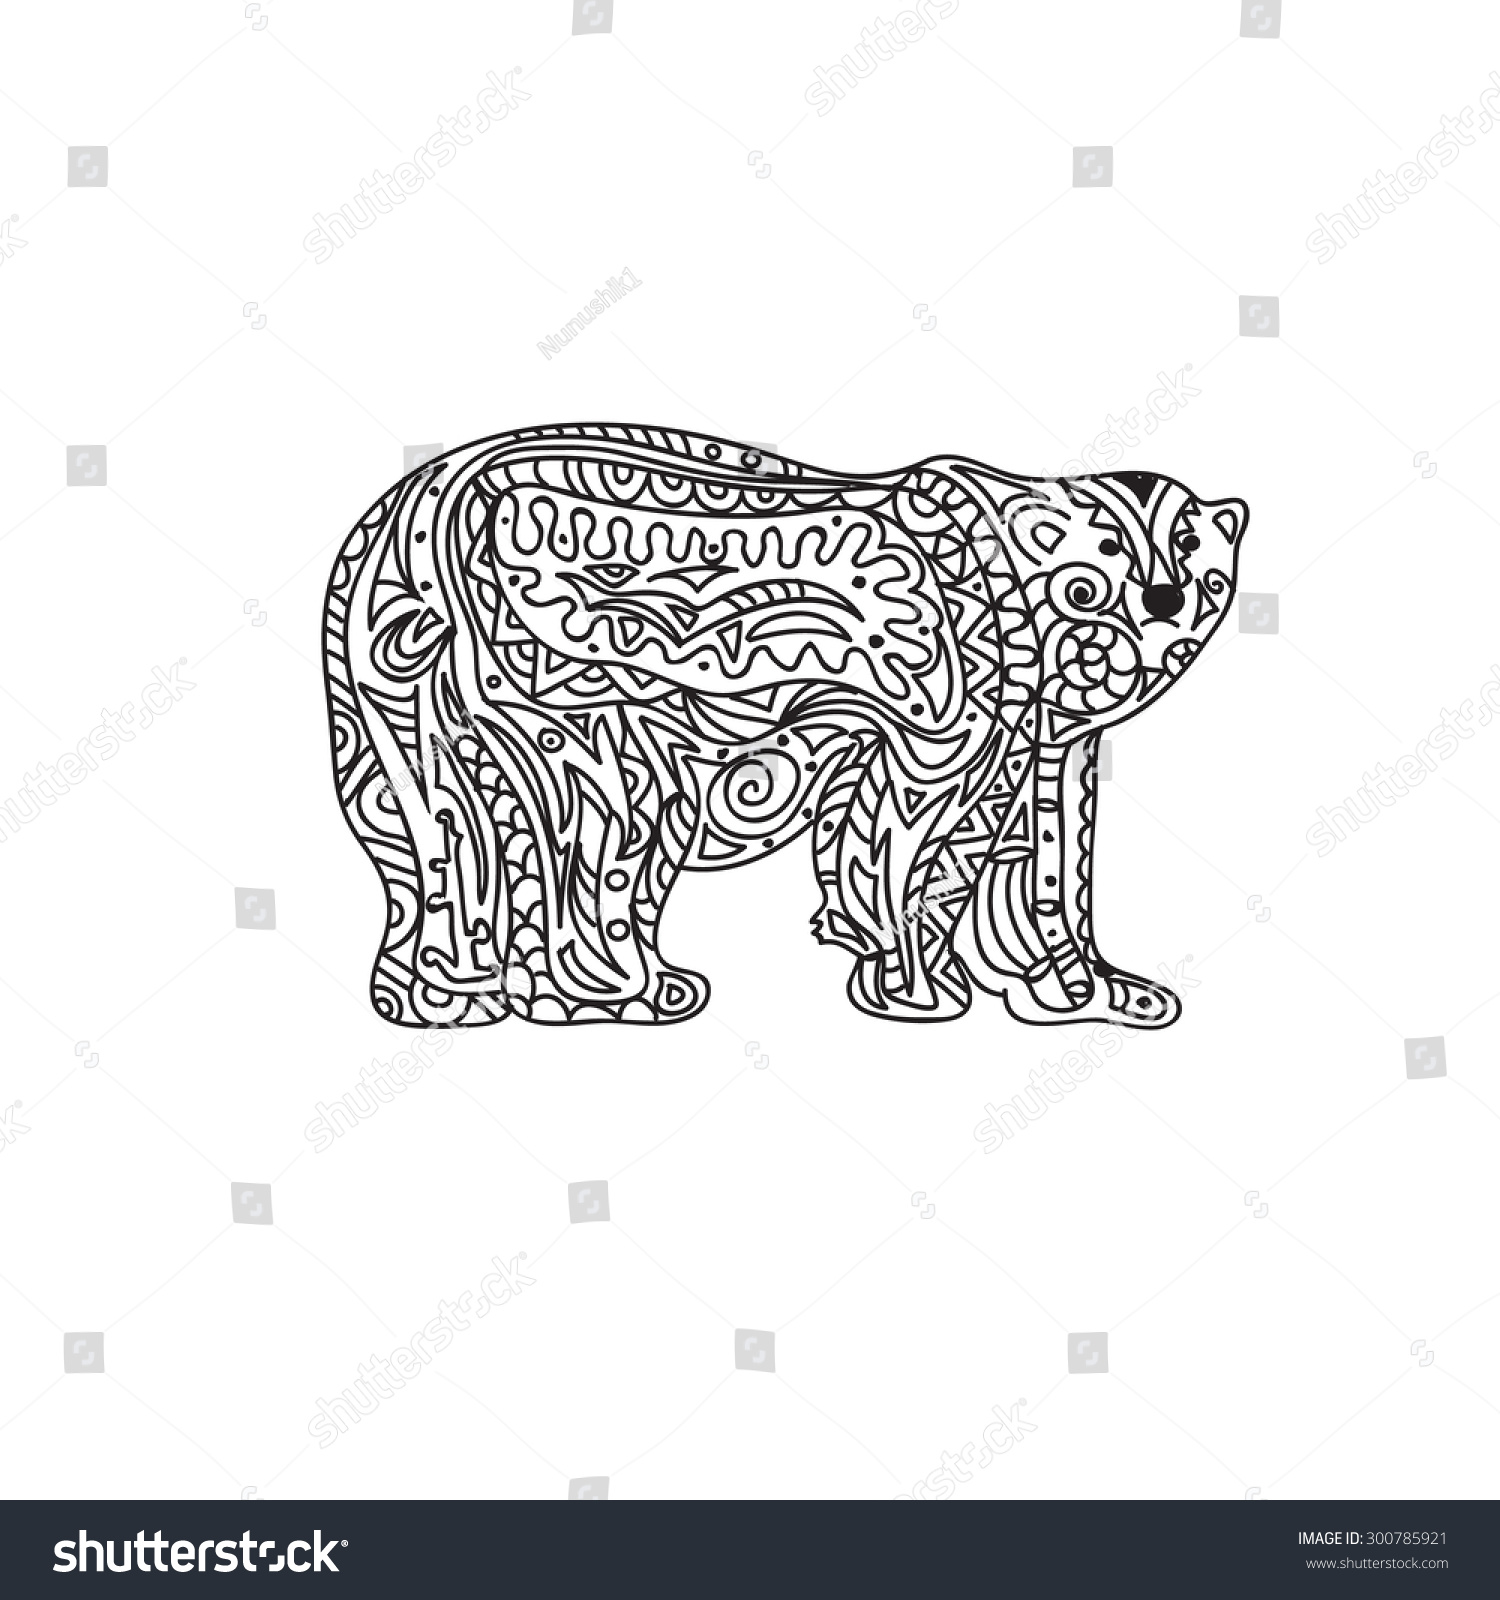 Polar Bear Coloring Page Stock Vector 300785921 - Shutterstock